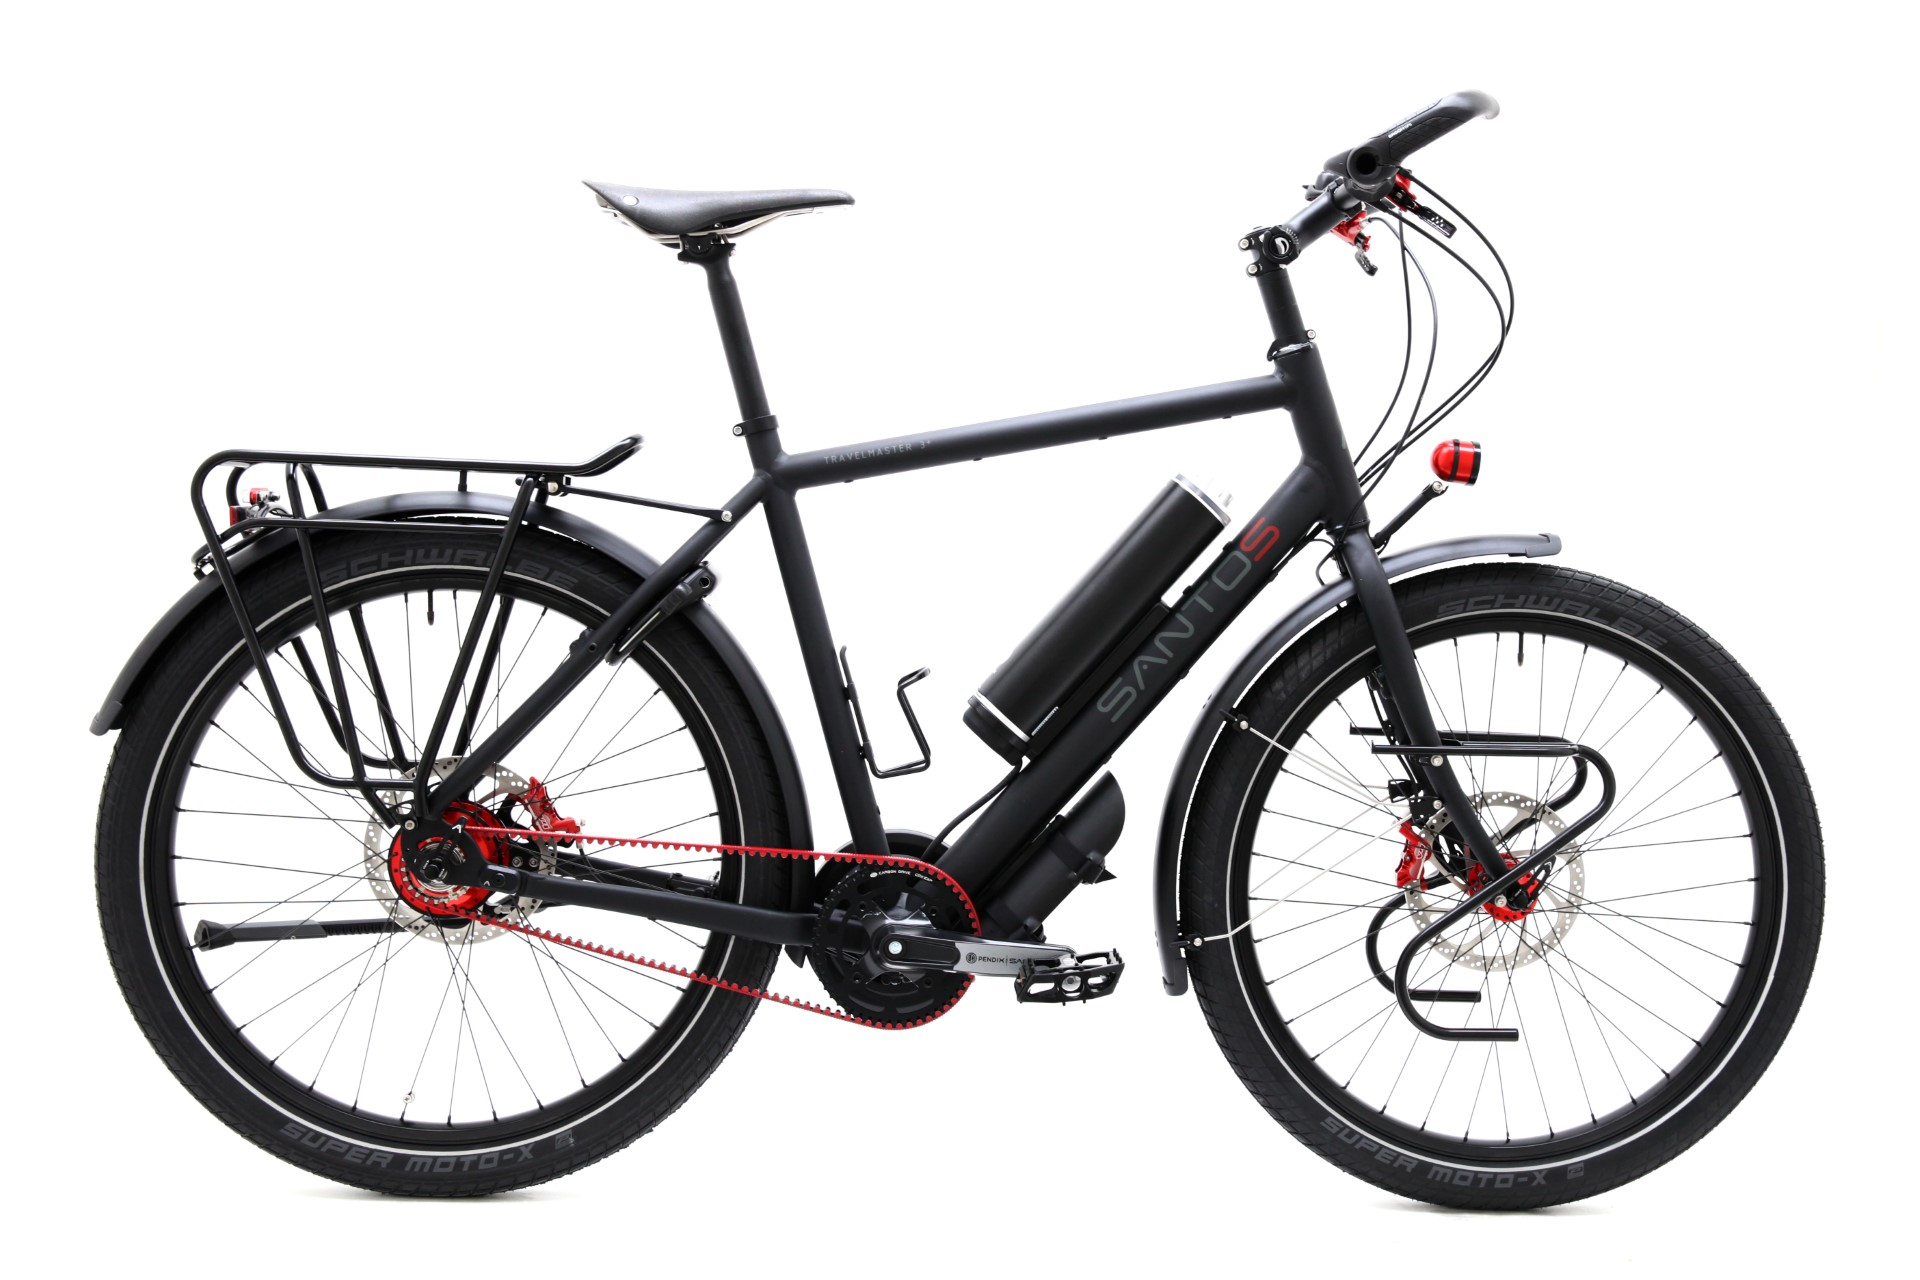 Santos Travelmaster 3+ PX E-bike